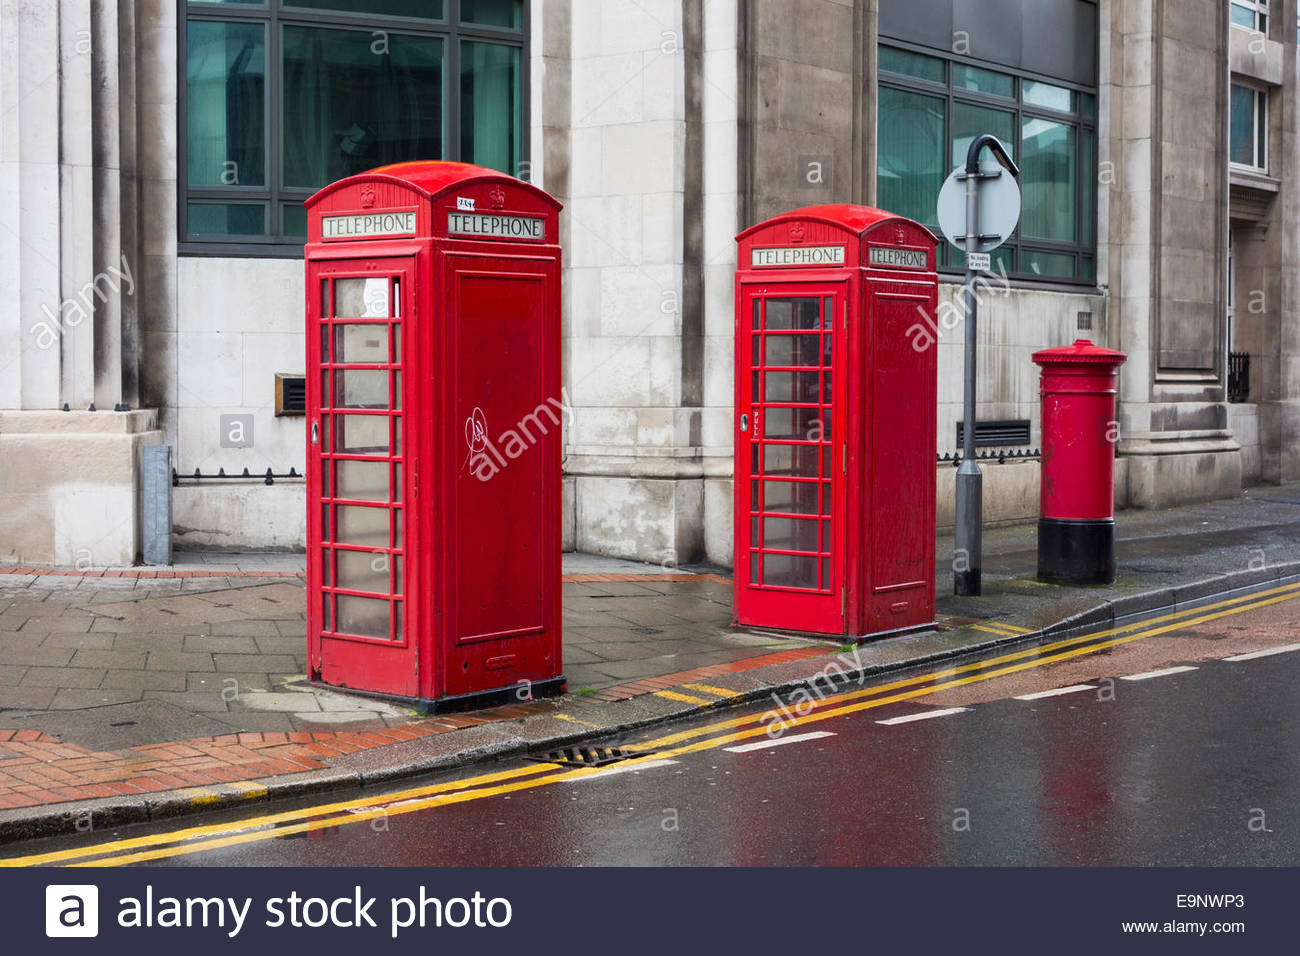 Two red phone boxes and a red postbox in Sheffield, England - Stock Image